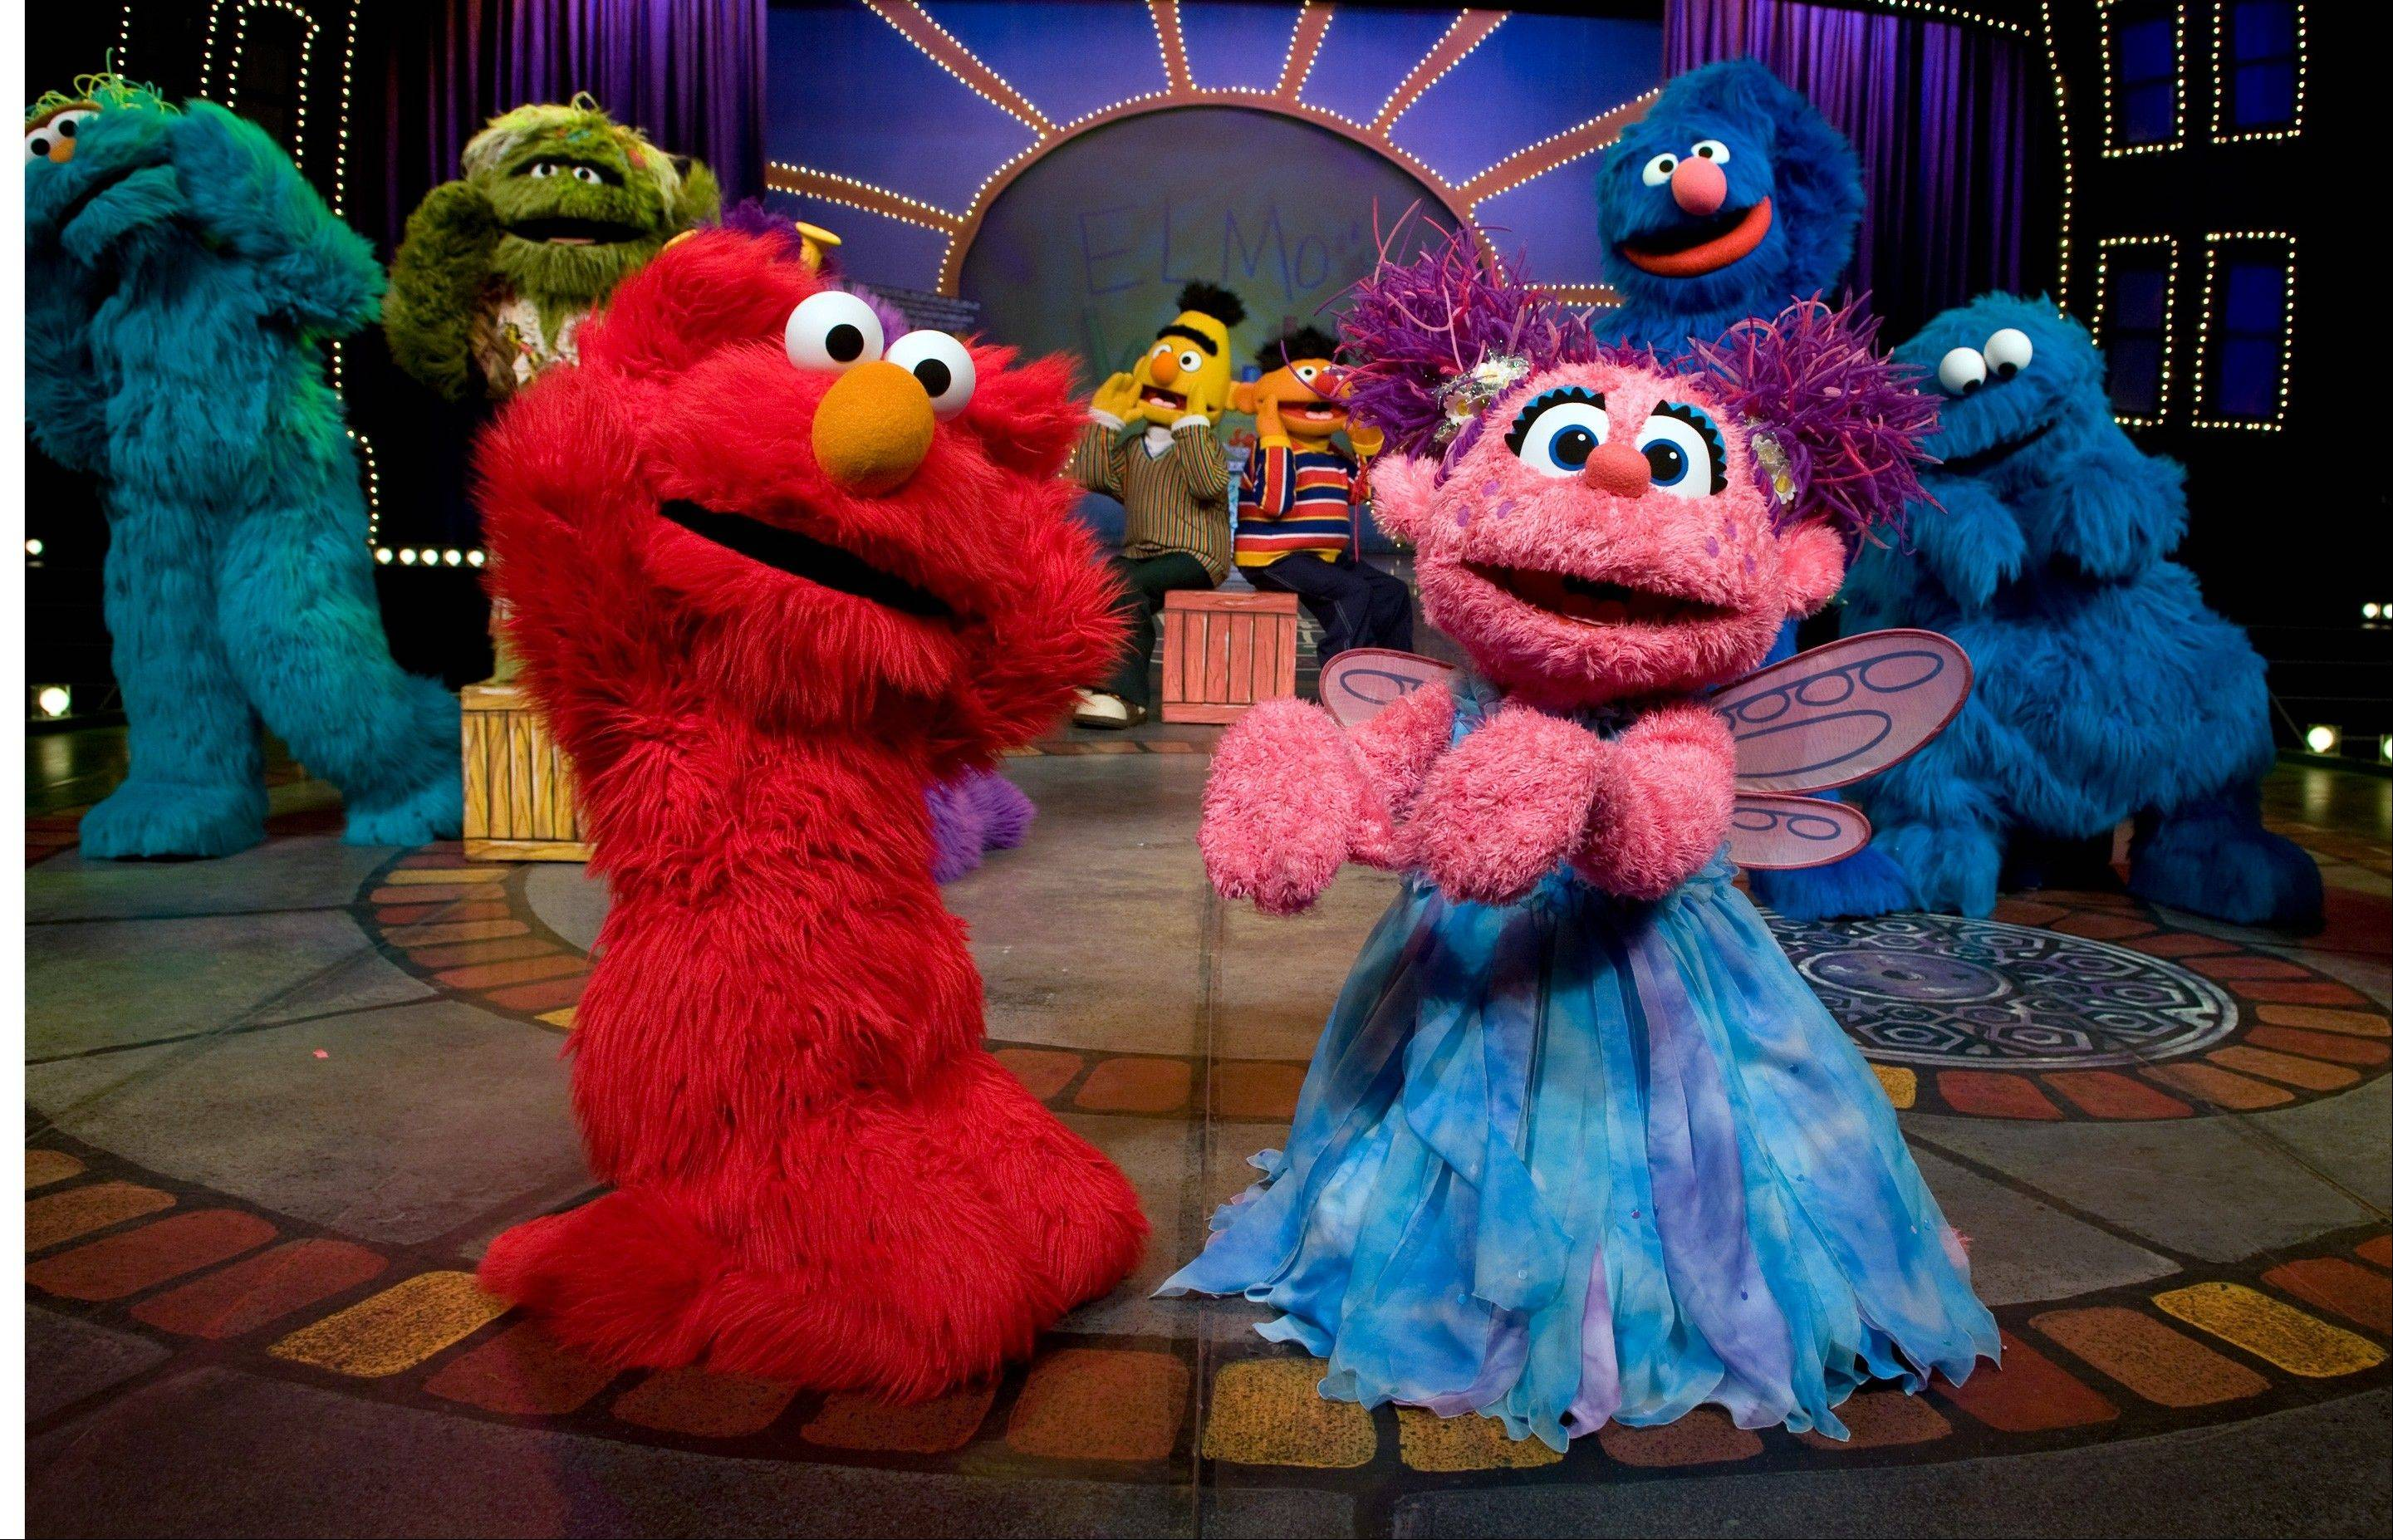 Elmo and Abby Cadabby, pictured here in the �Sesame Street� show �1-2-3 Imagine! with Elmo & Friends,� will perform at the Sears Centre Arena in Hoffman Estates in April 2014 in the show �Can�t Stop Singing.�